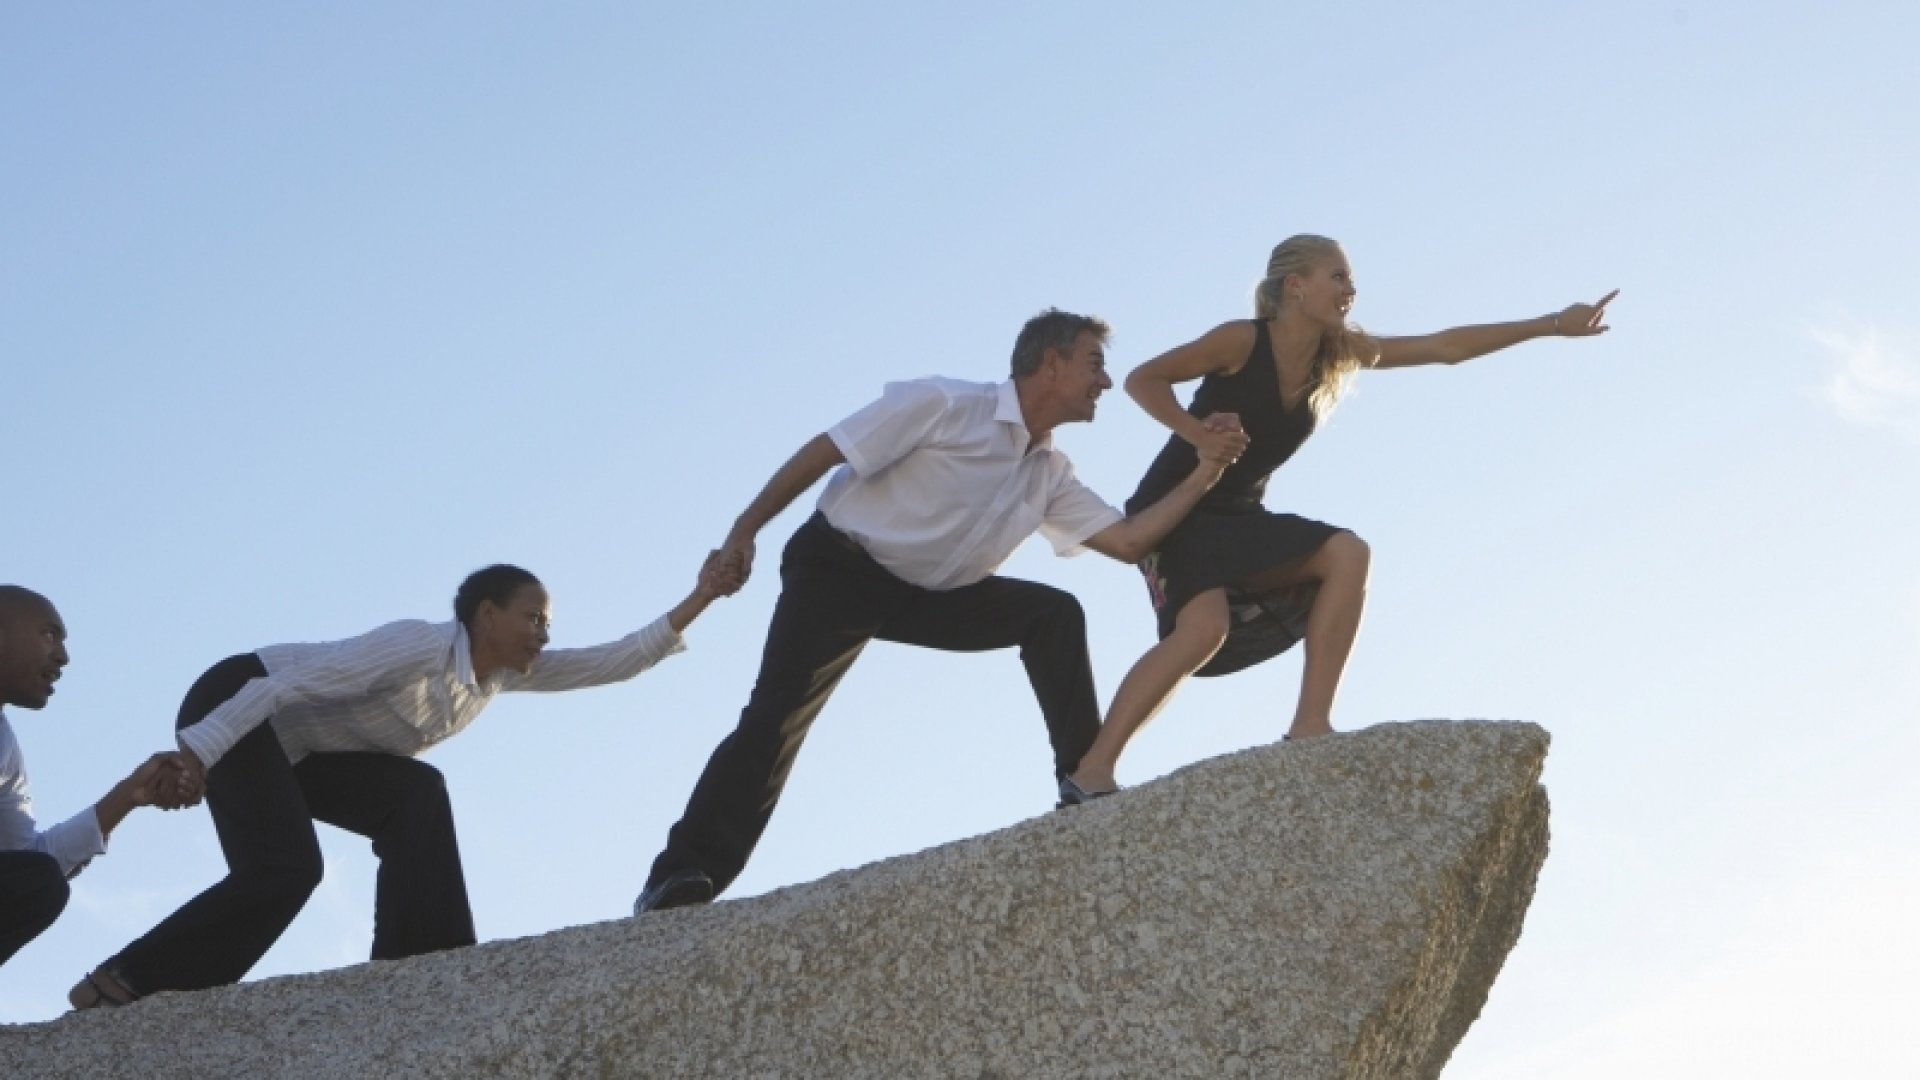 5 Ways to Turn Your Business into a Top Company for Leaders